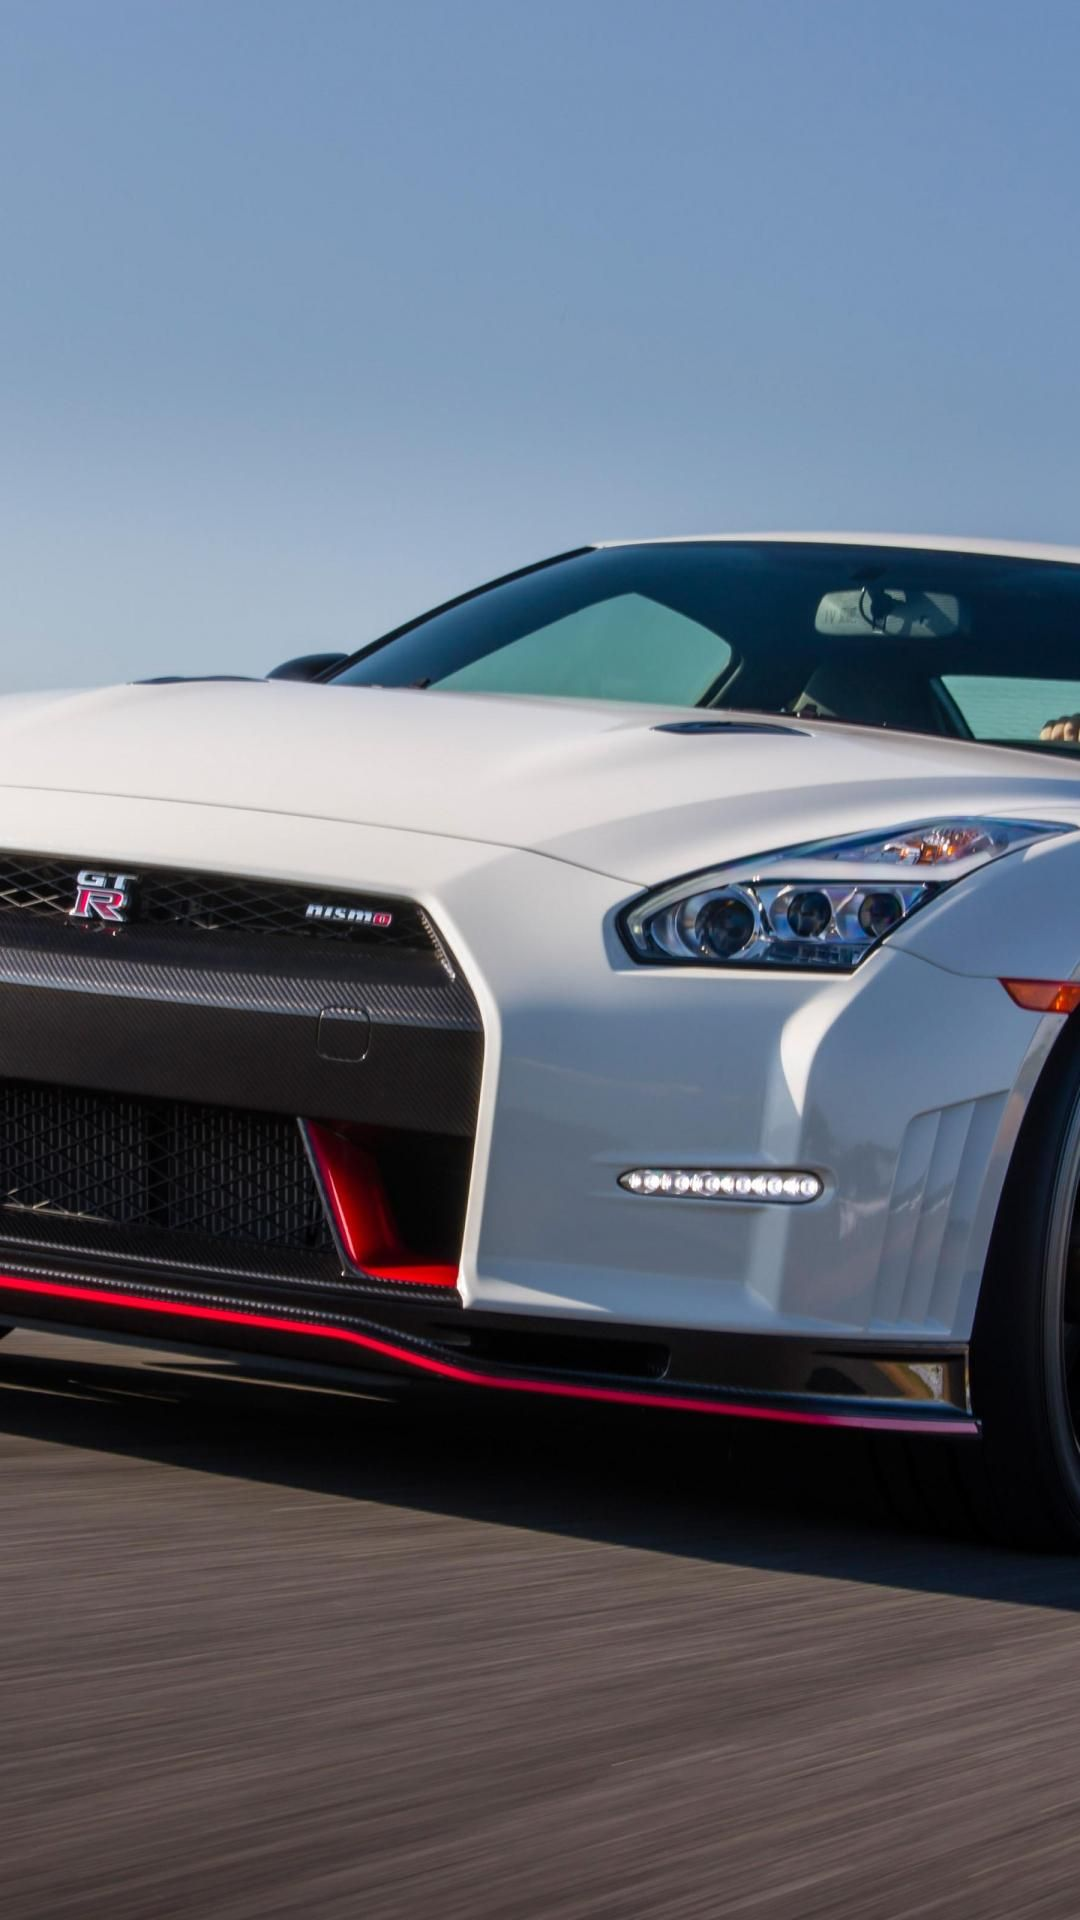 nissan gtr nismo wallpaper for iphone 6 plus